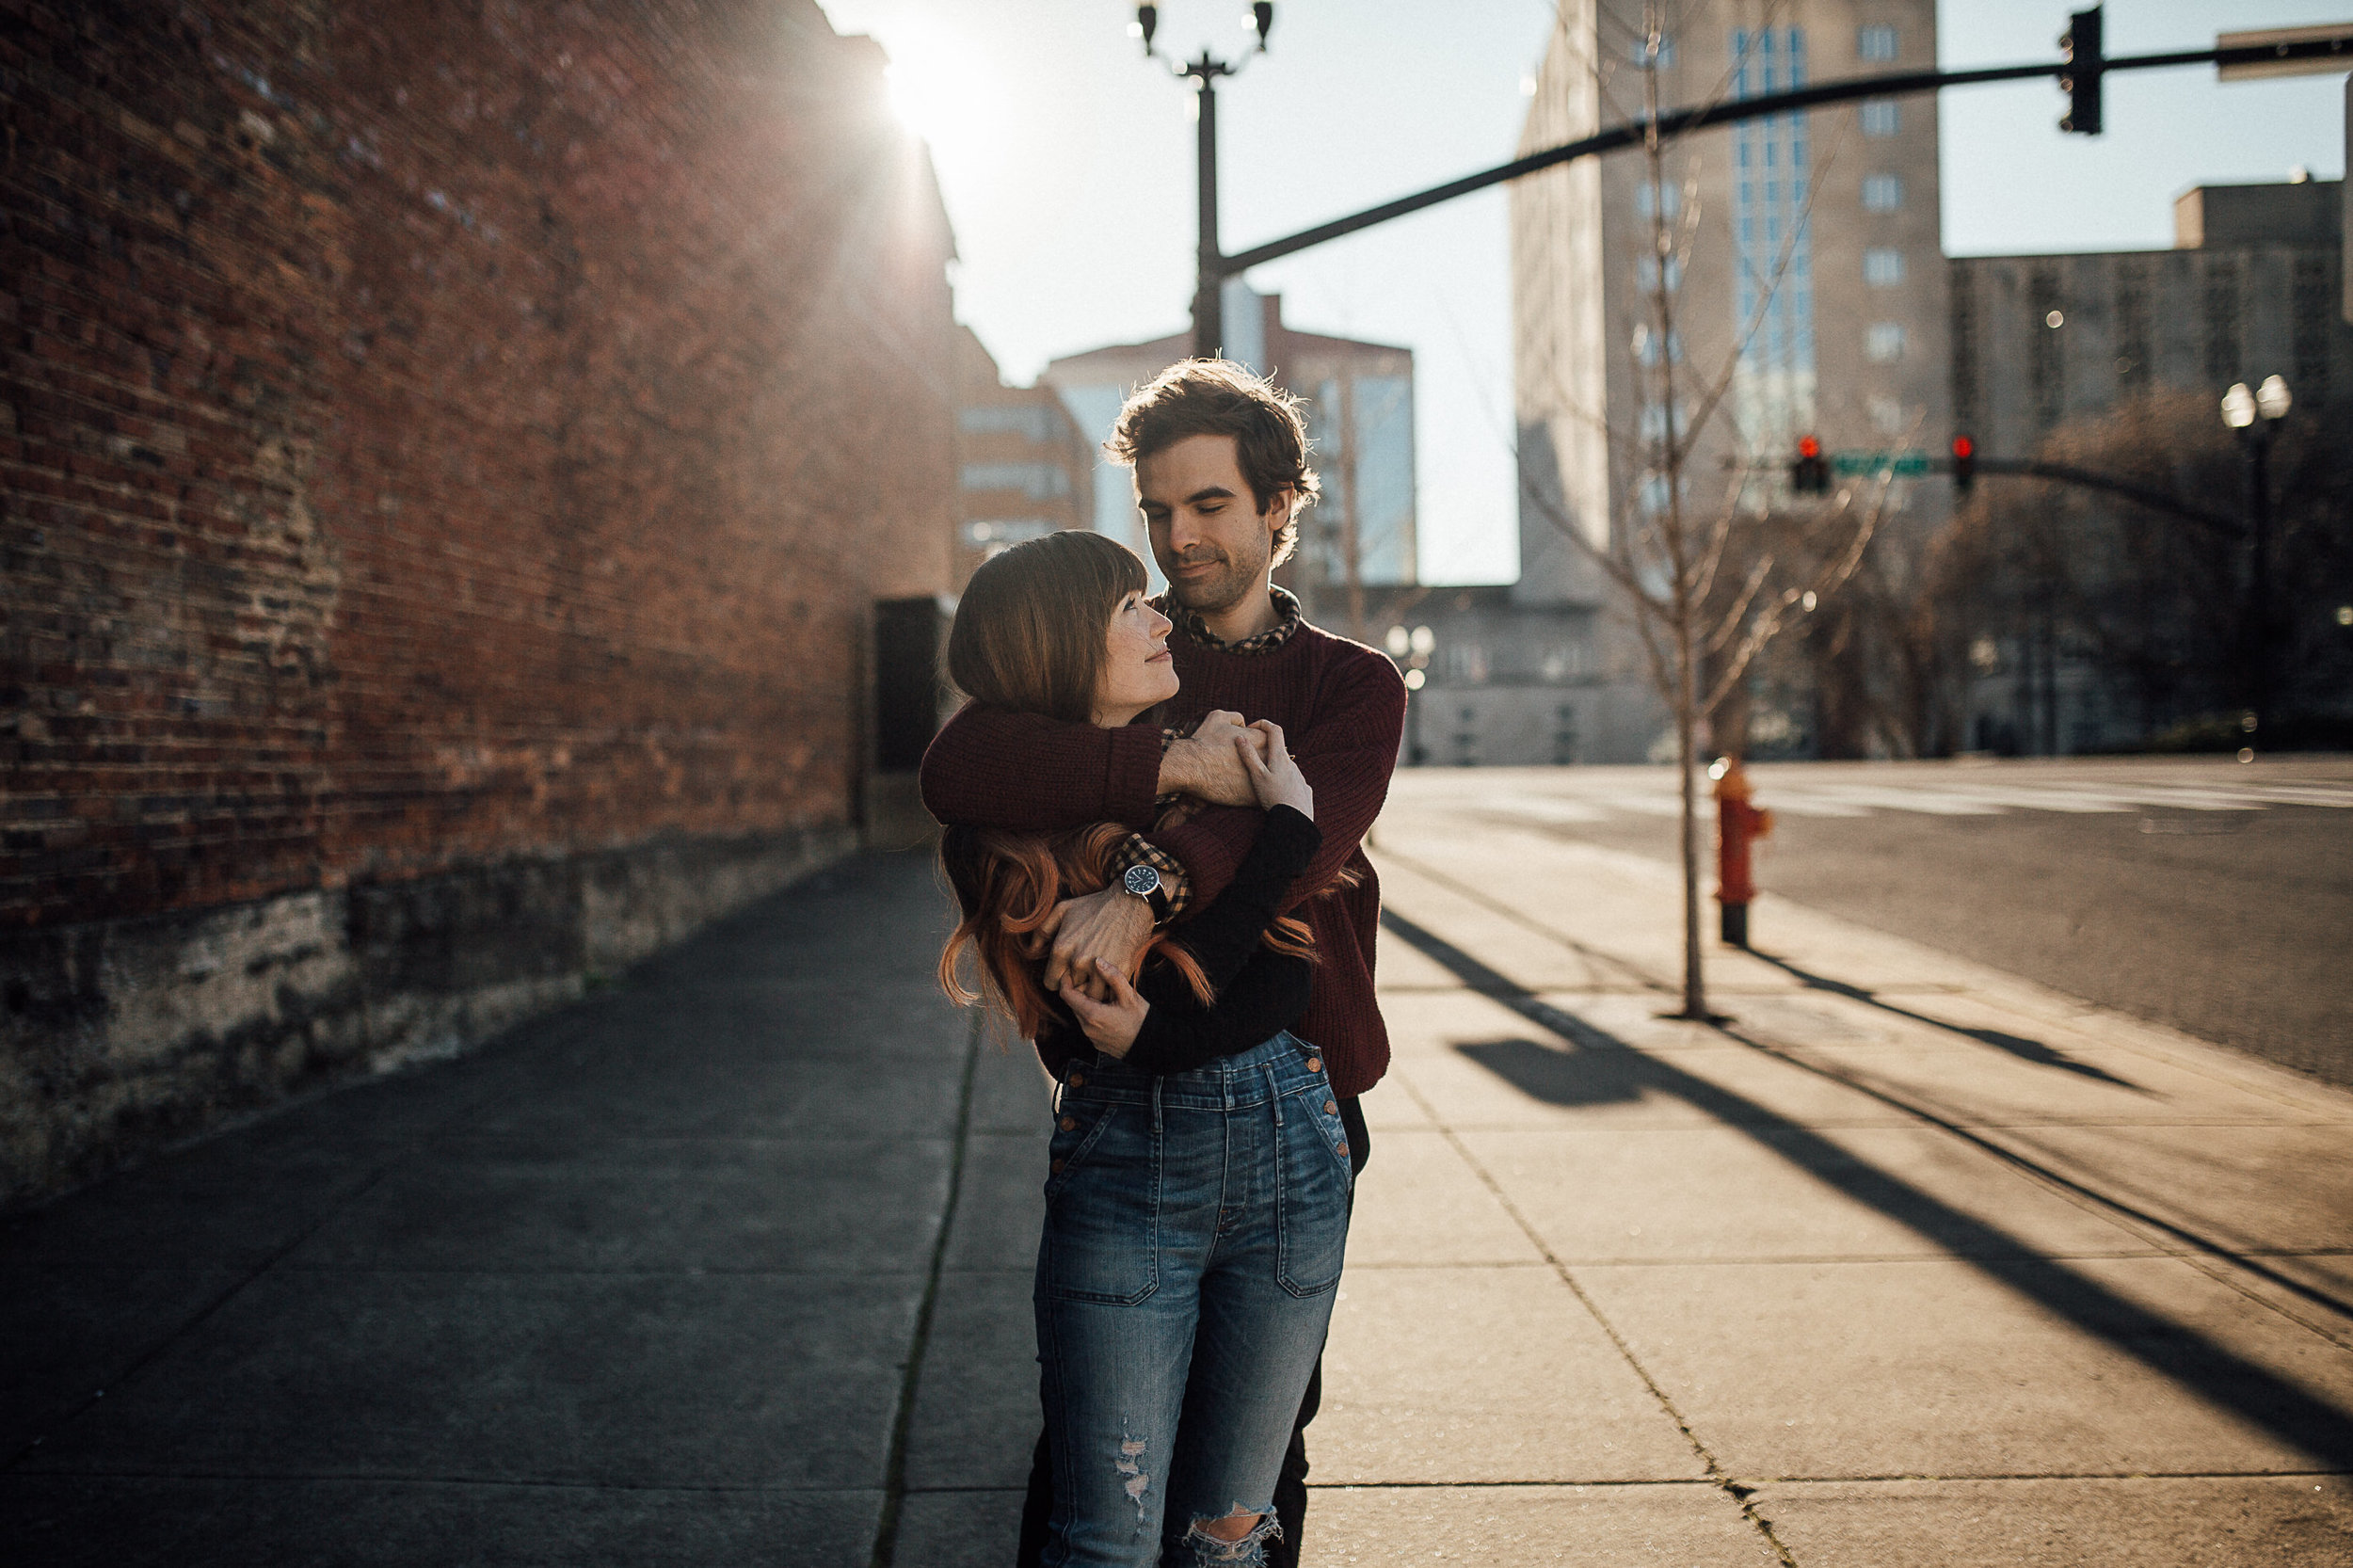 downtown-nashville-engagement-pictures-cassie-cook-photography-12.jpg